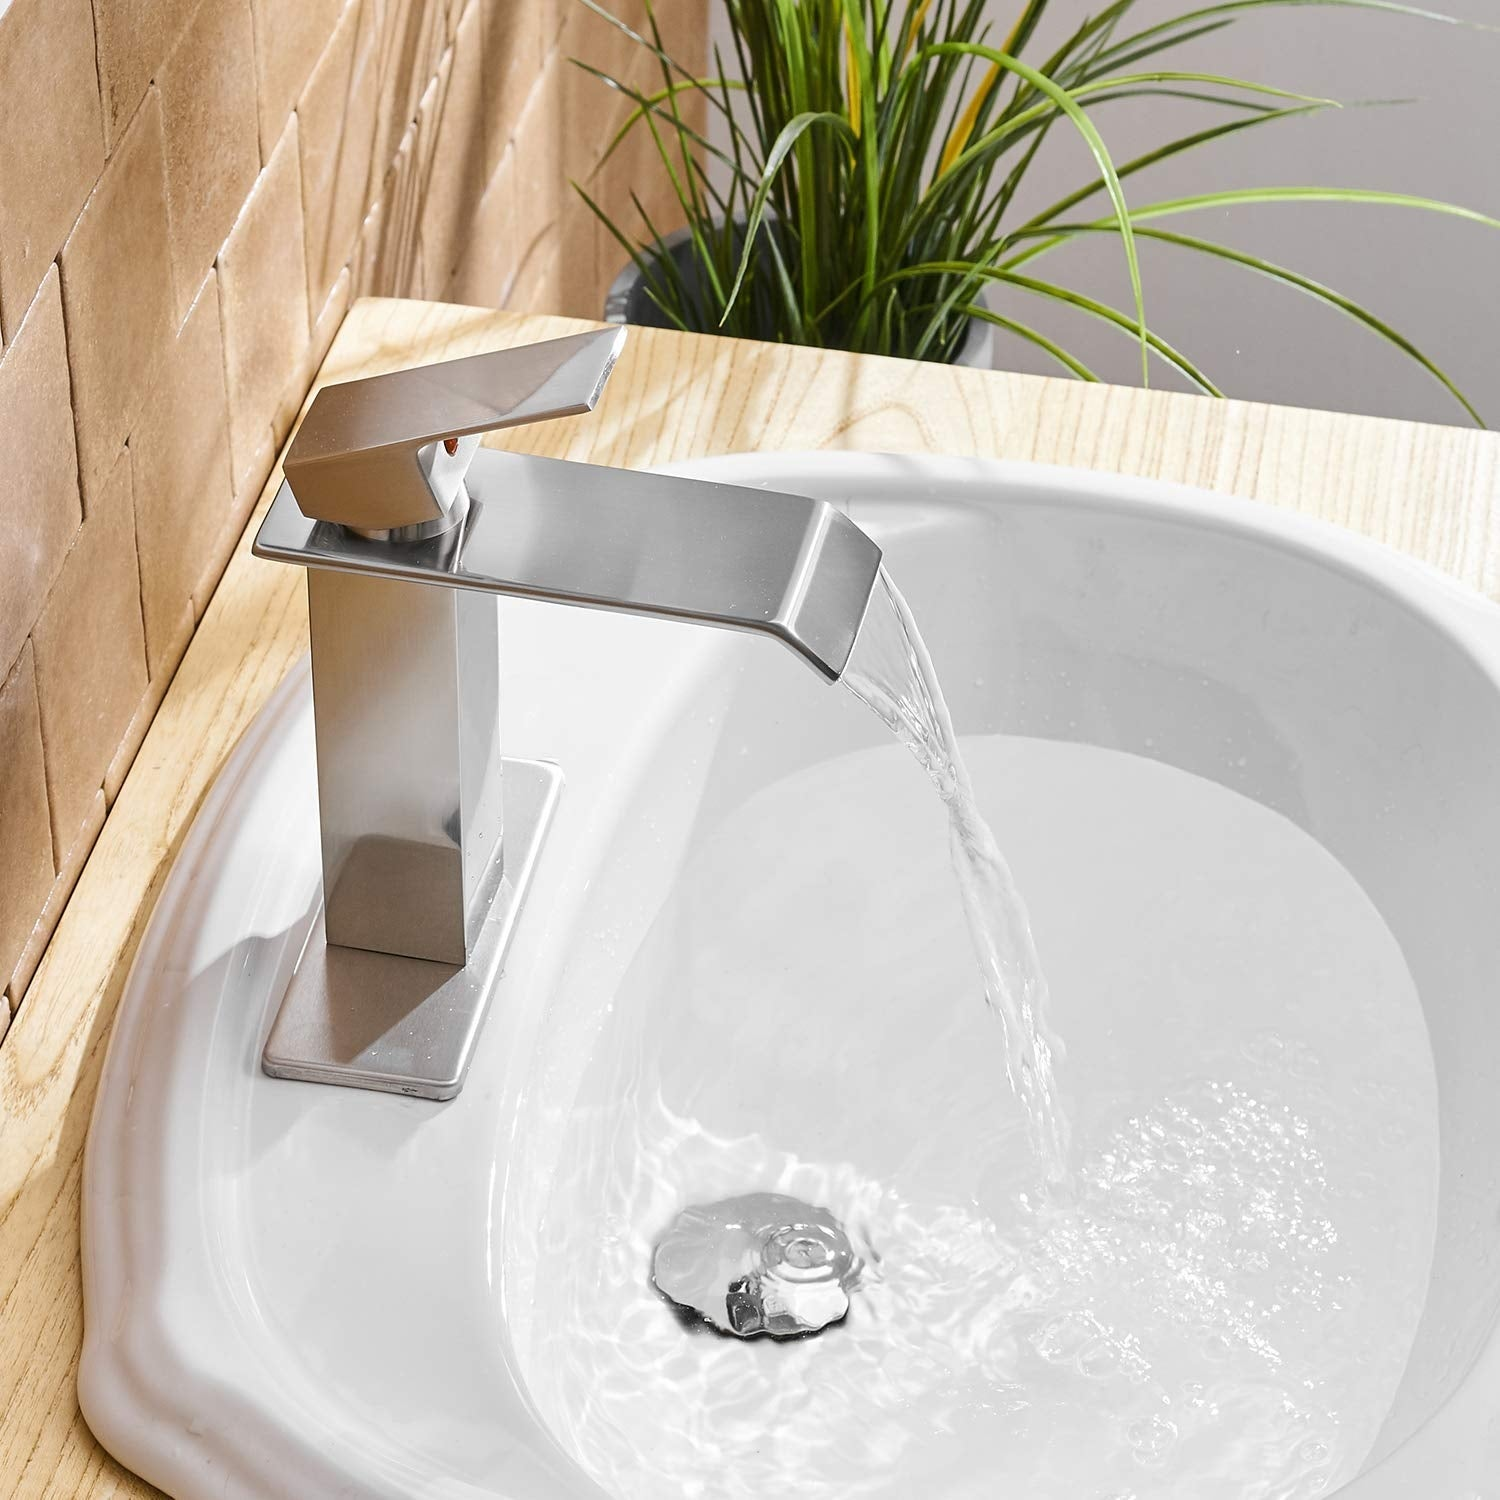 Vibrantbath Commercial Waterfall Spout Bathroom Sink Faucet Overstock 29605209